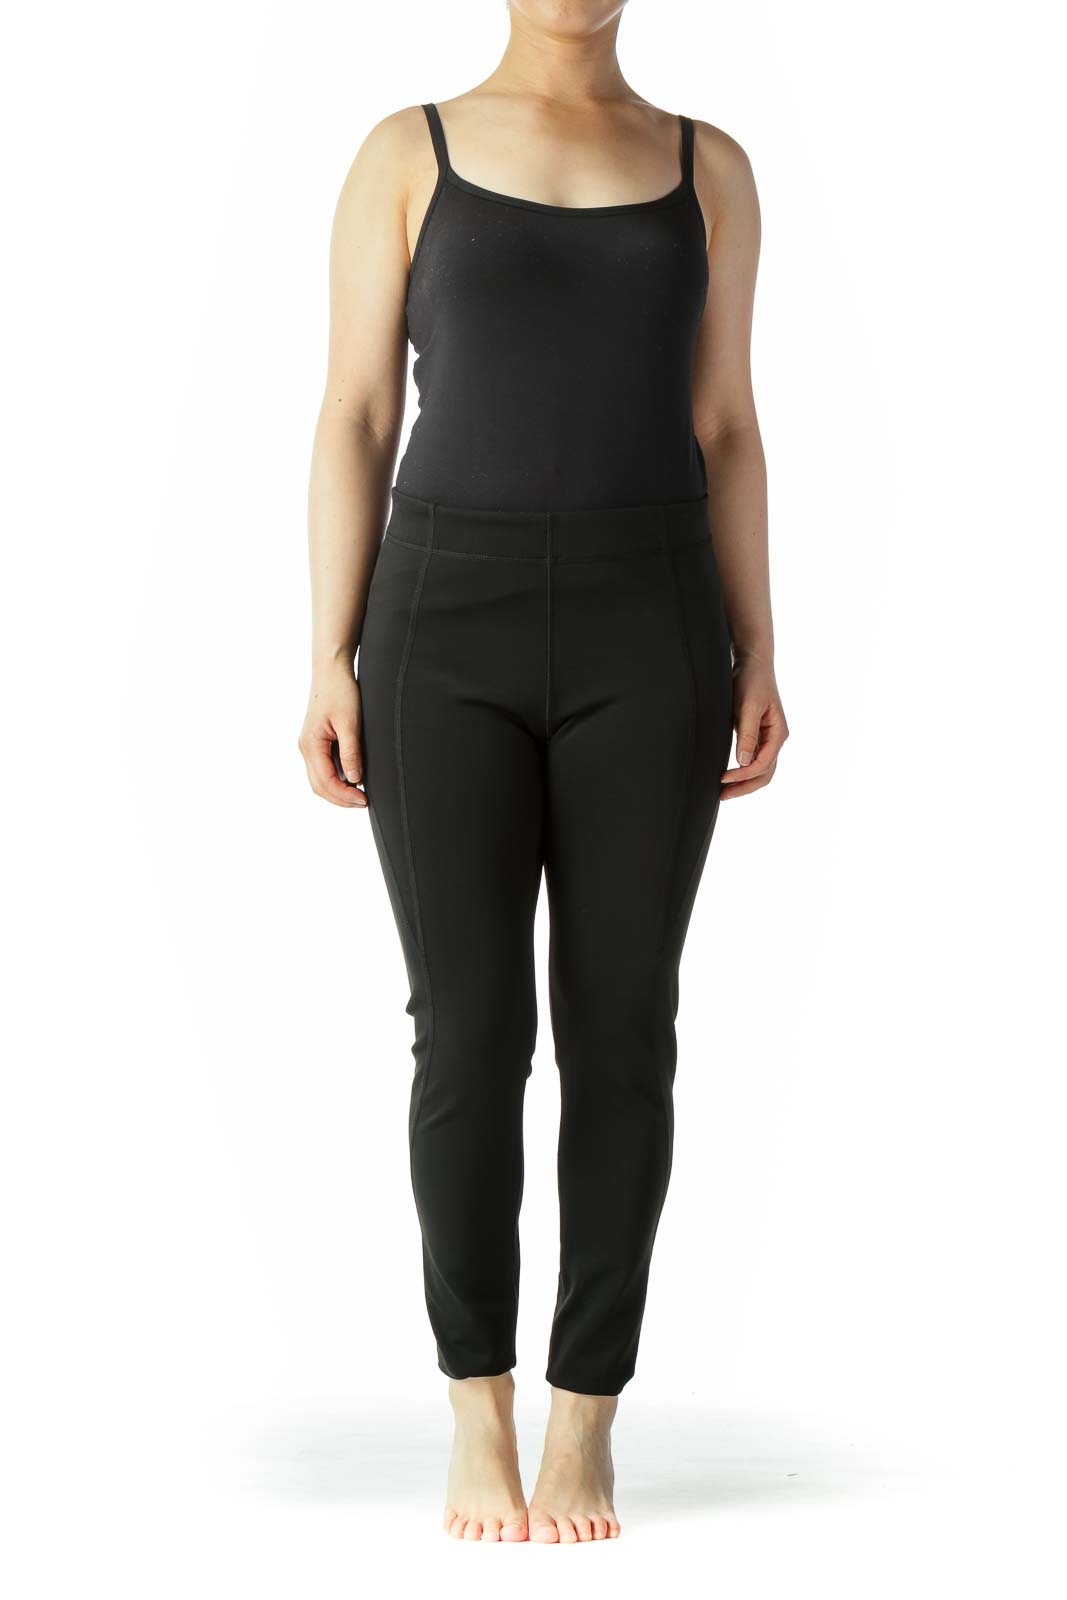 Black Elastic Waist Stretch Active Leggings